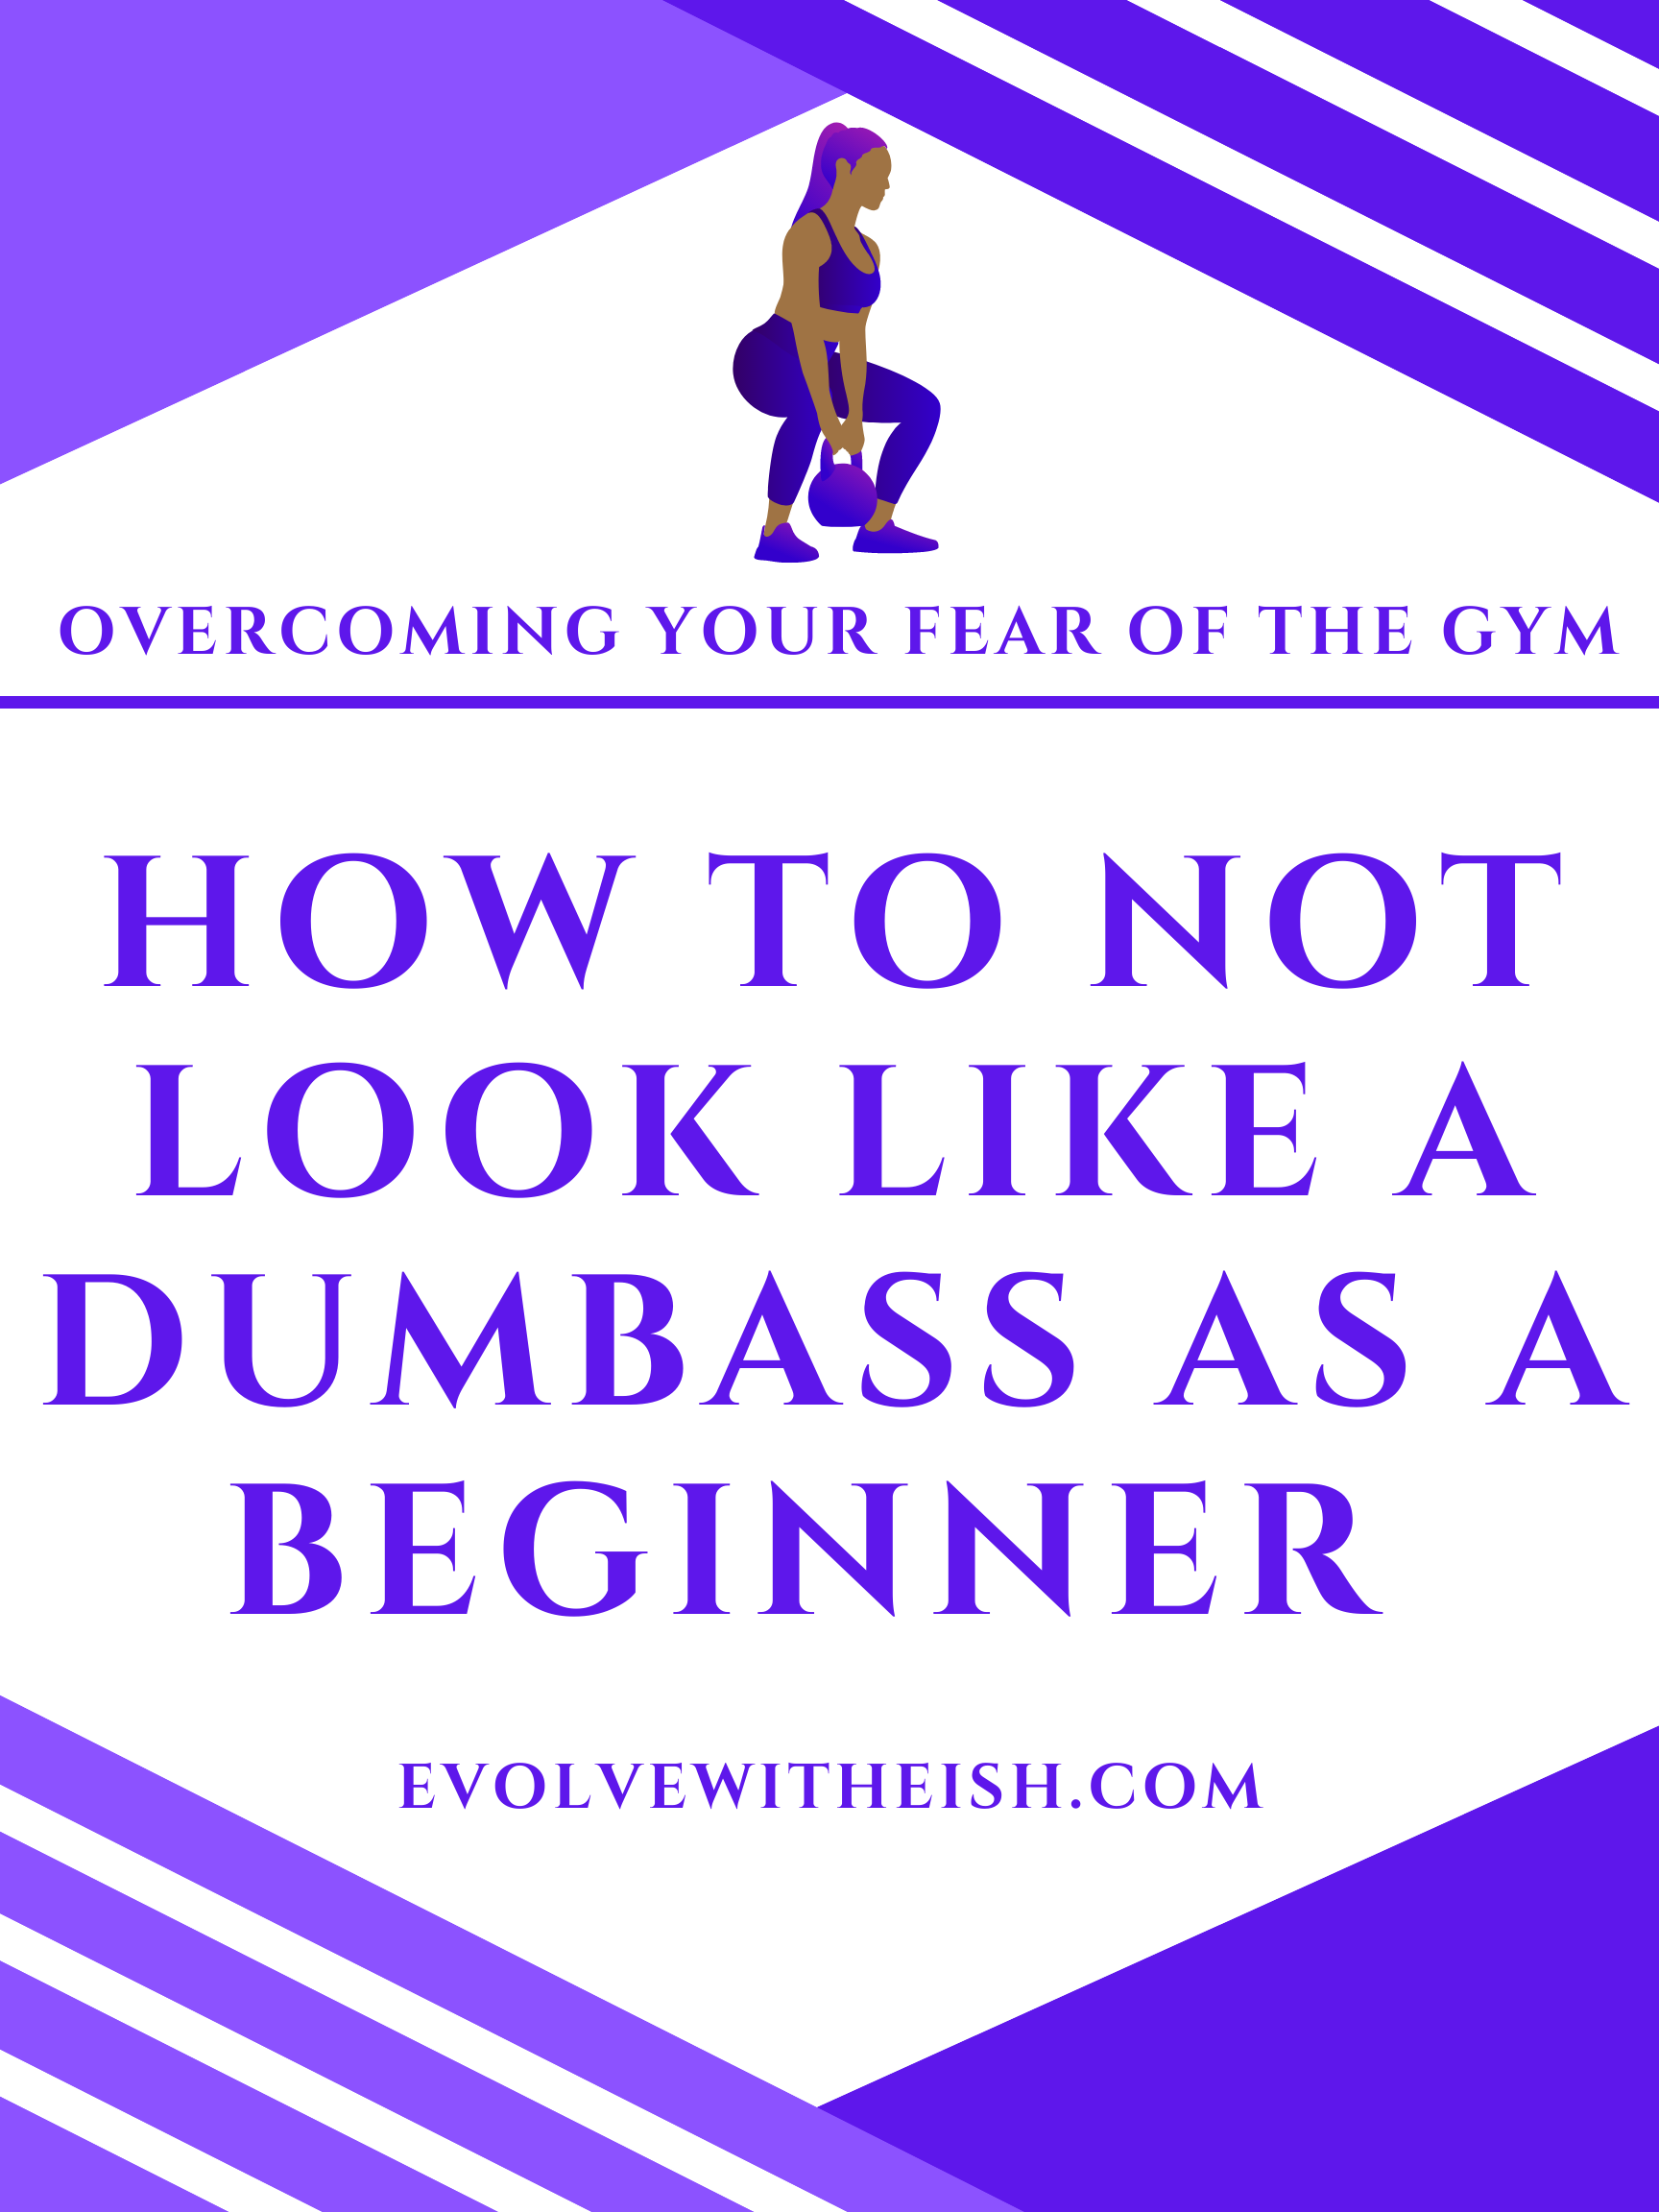 fear of going to the gym, beginner